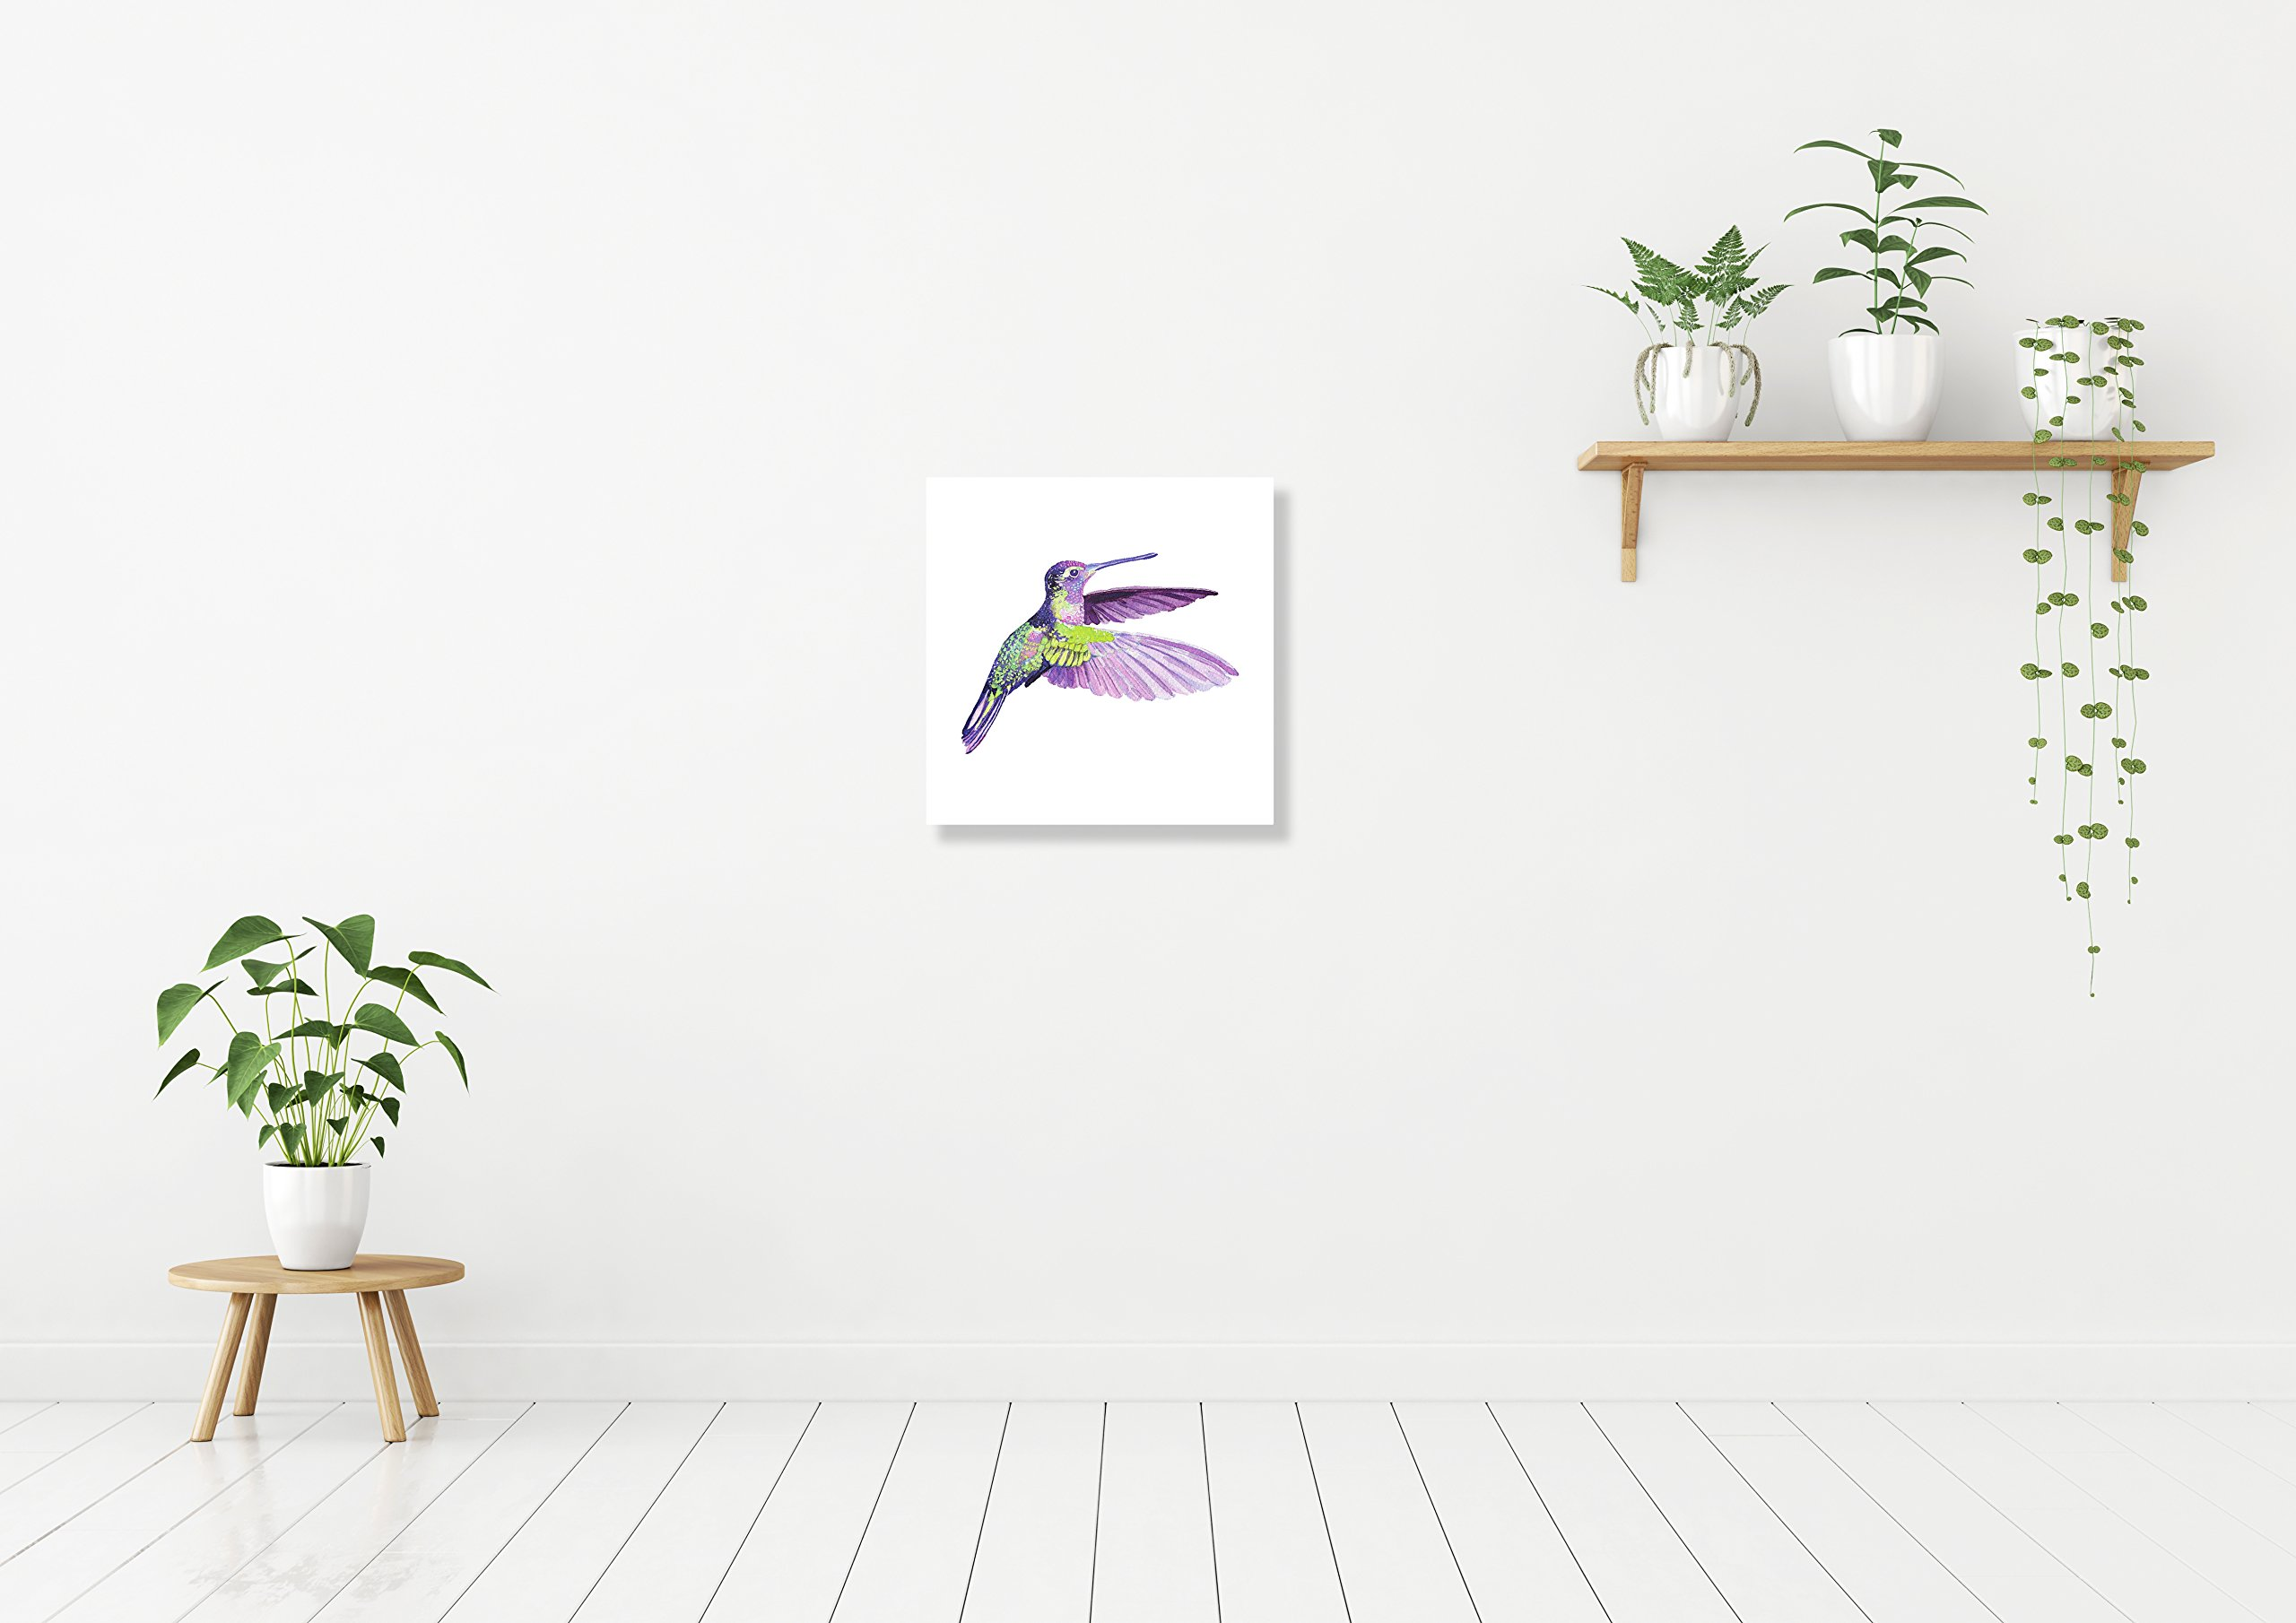 Hummingbird Home Wall Shelf Decor Animal Decorations Watercolor Square Sign - 9x9, Plastic by iCandy Products Inc (Image #2)